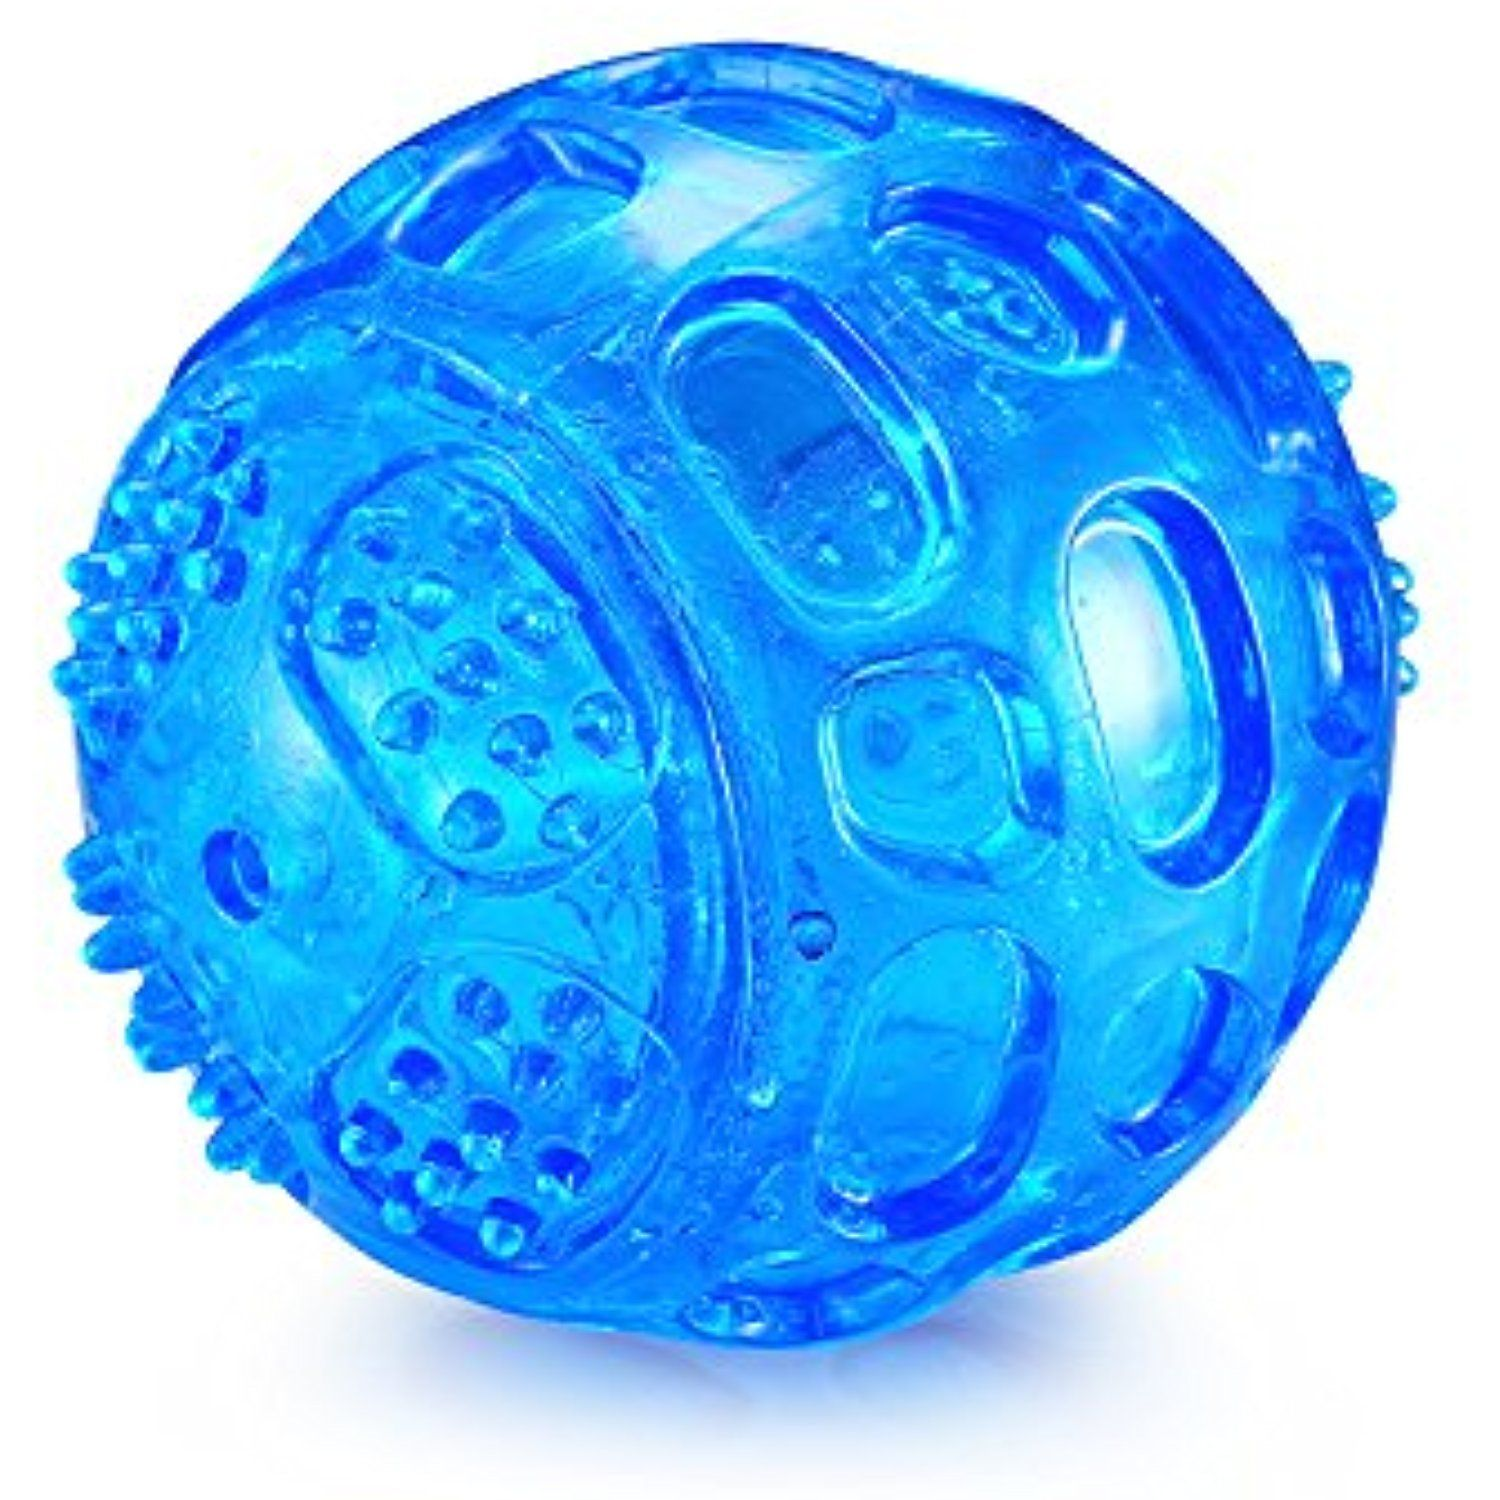 Squeaky Balls Dog Toys Balls Indestructible Tough Rubber Dog